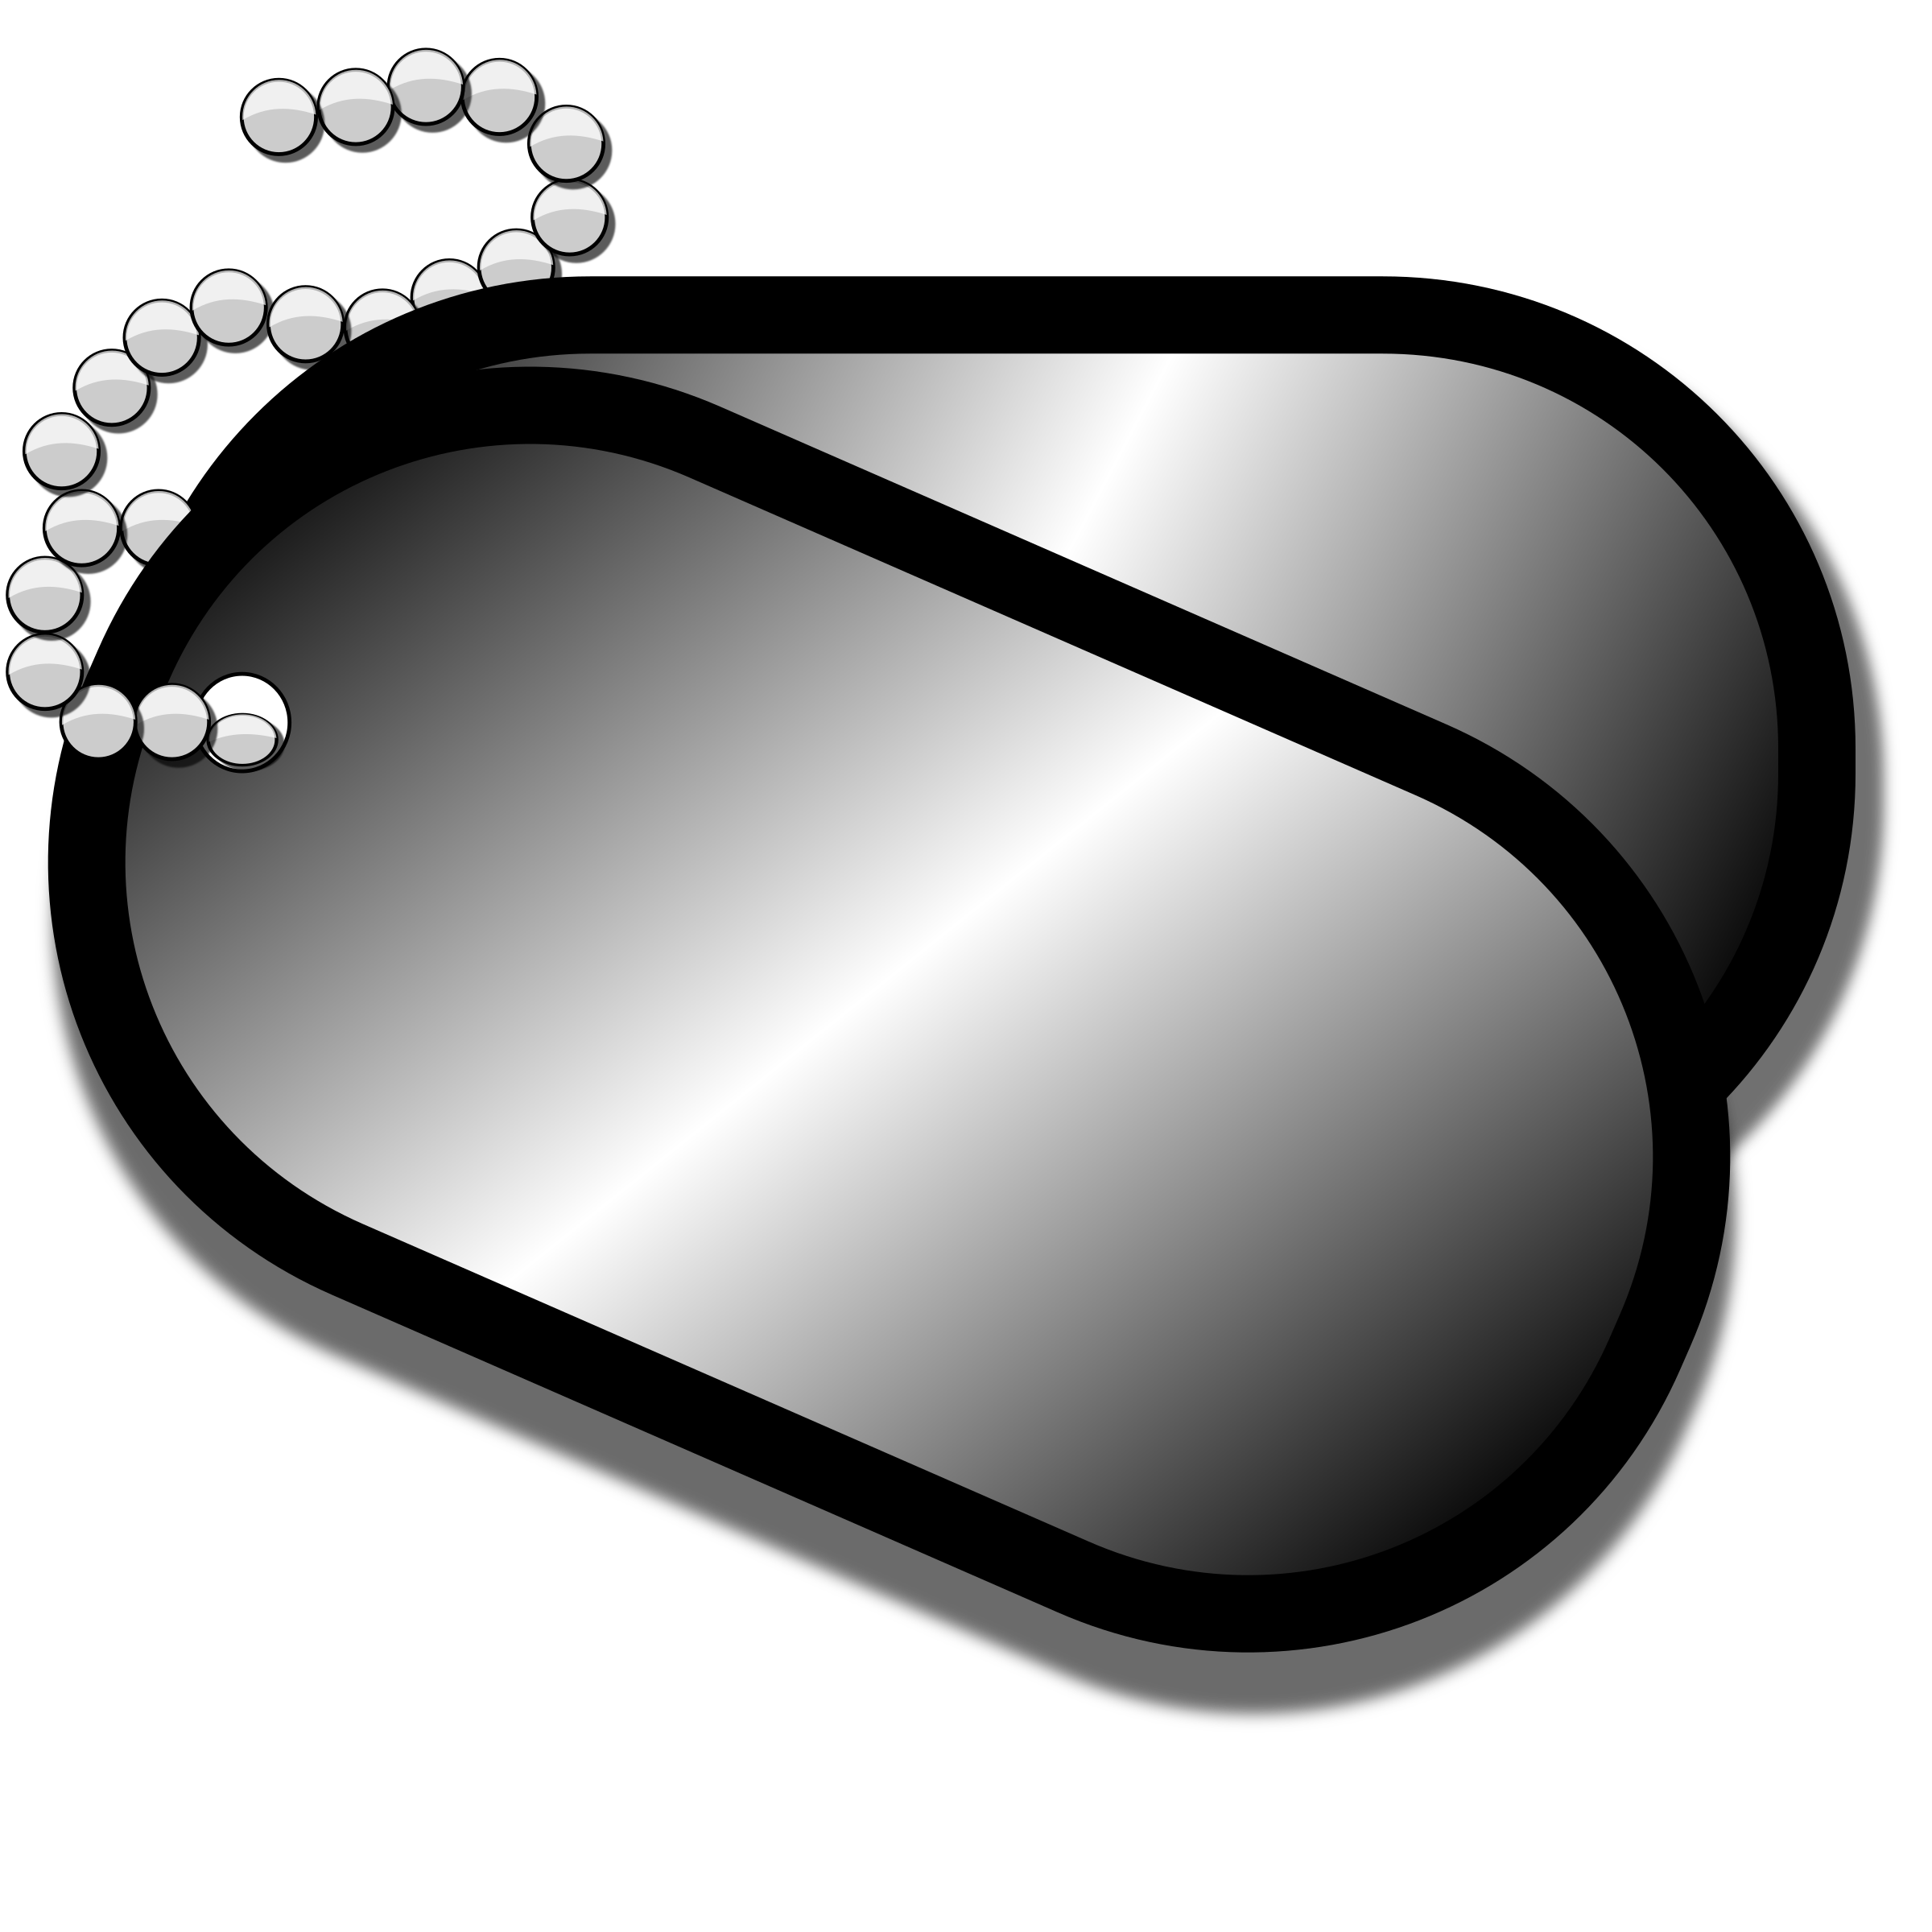 Clipart - Dog Tags free